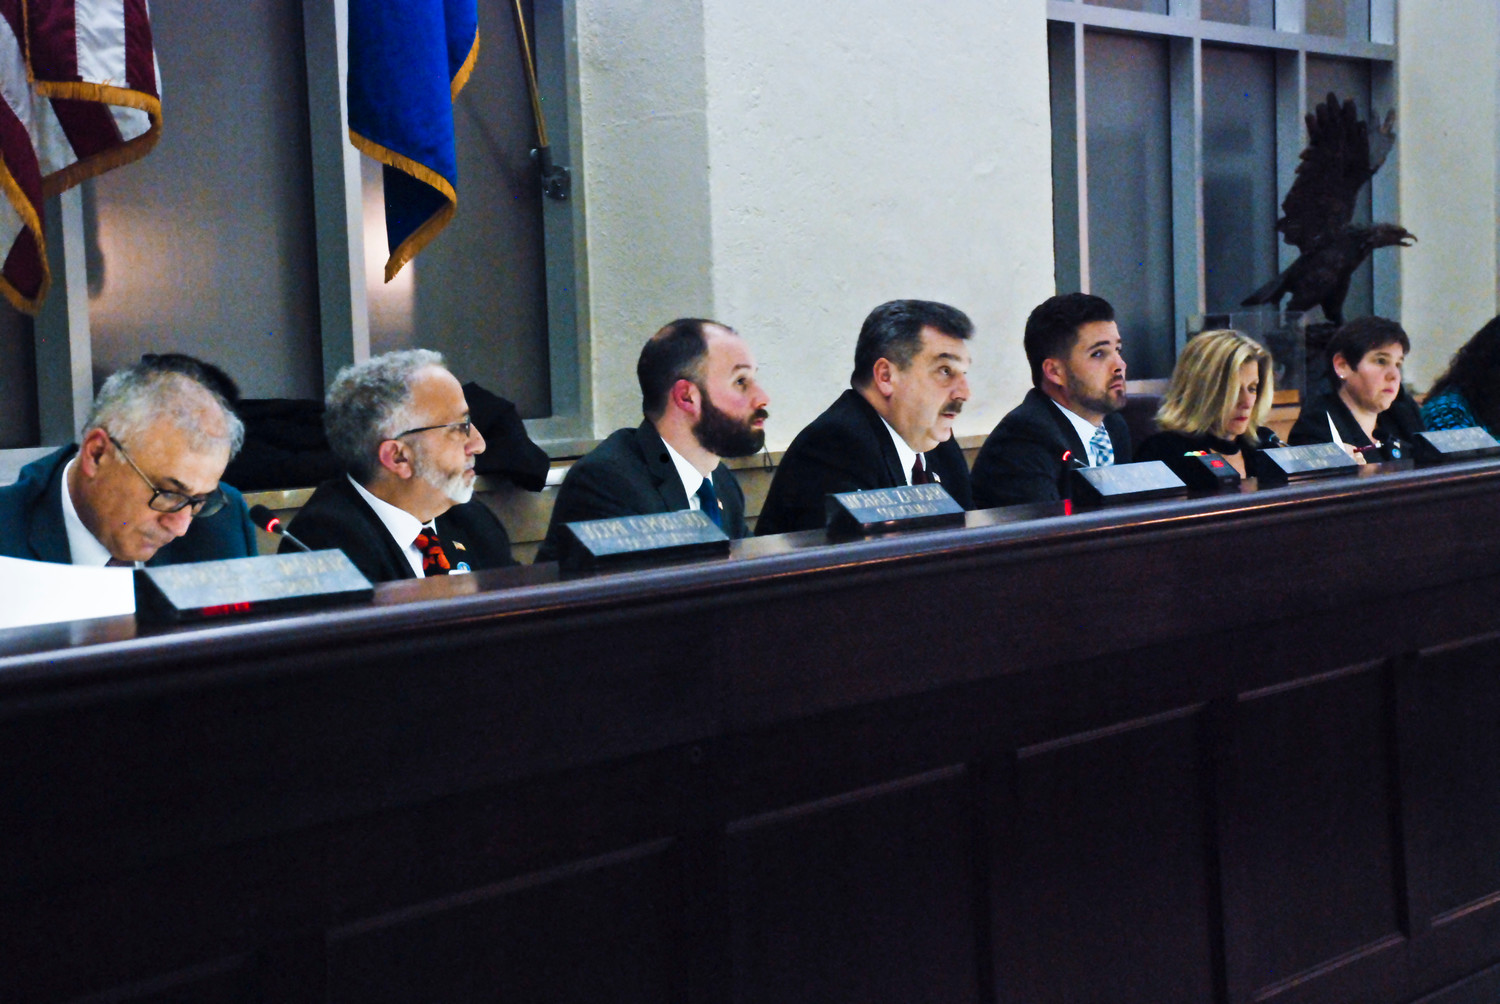 The Glen Cove City Council heard the public's concerns at a hearing that lasted four hours.